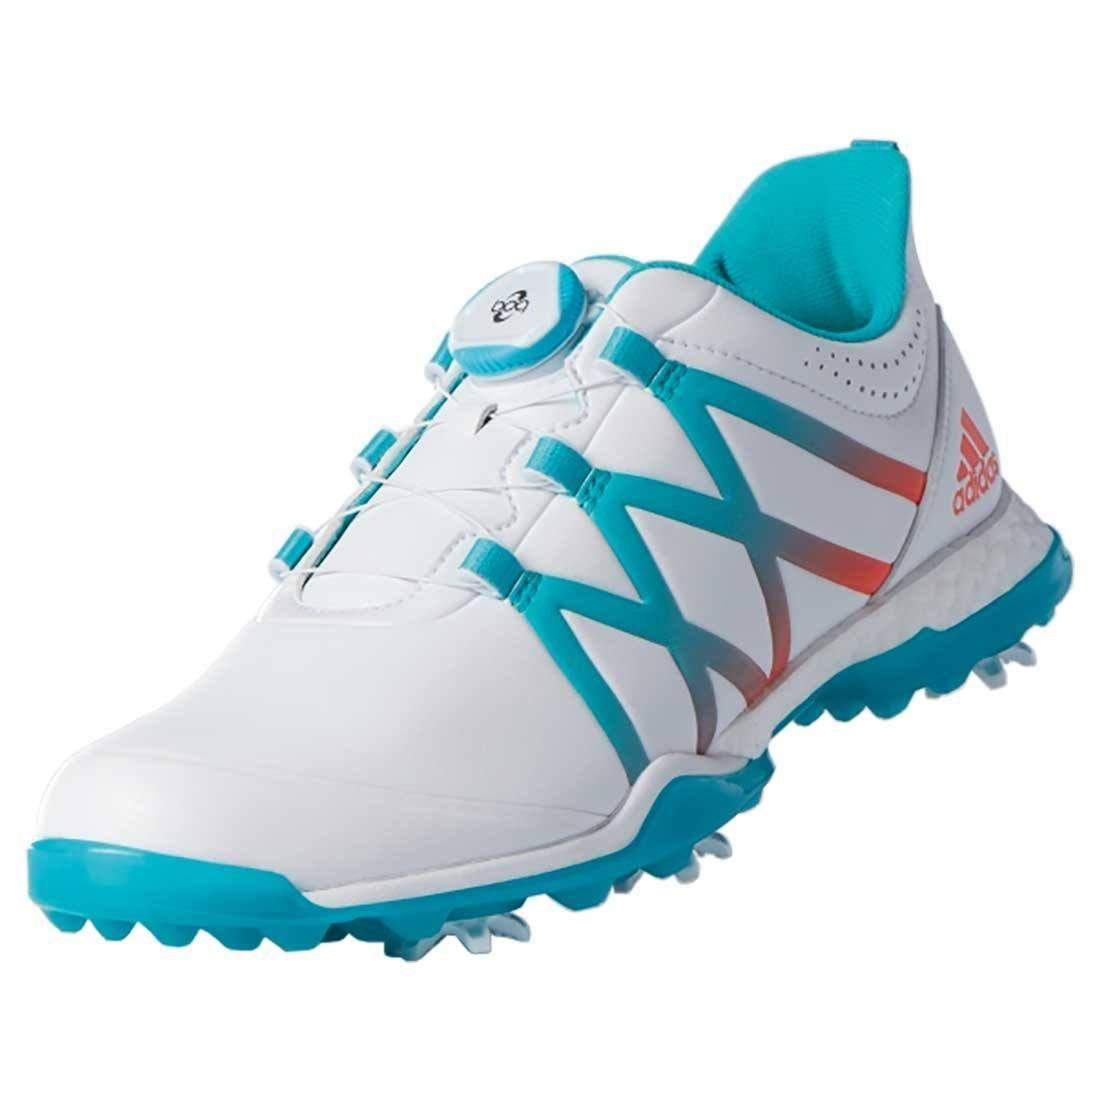 Kids golf shoes for boys and girls. The best junior golf shoes 2018 19. 7aca150e4